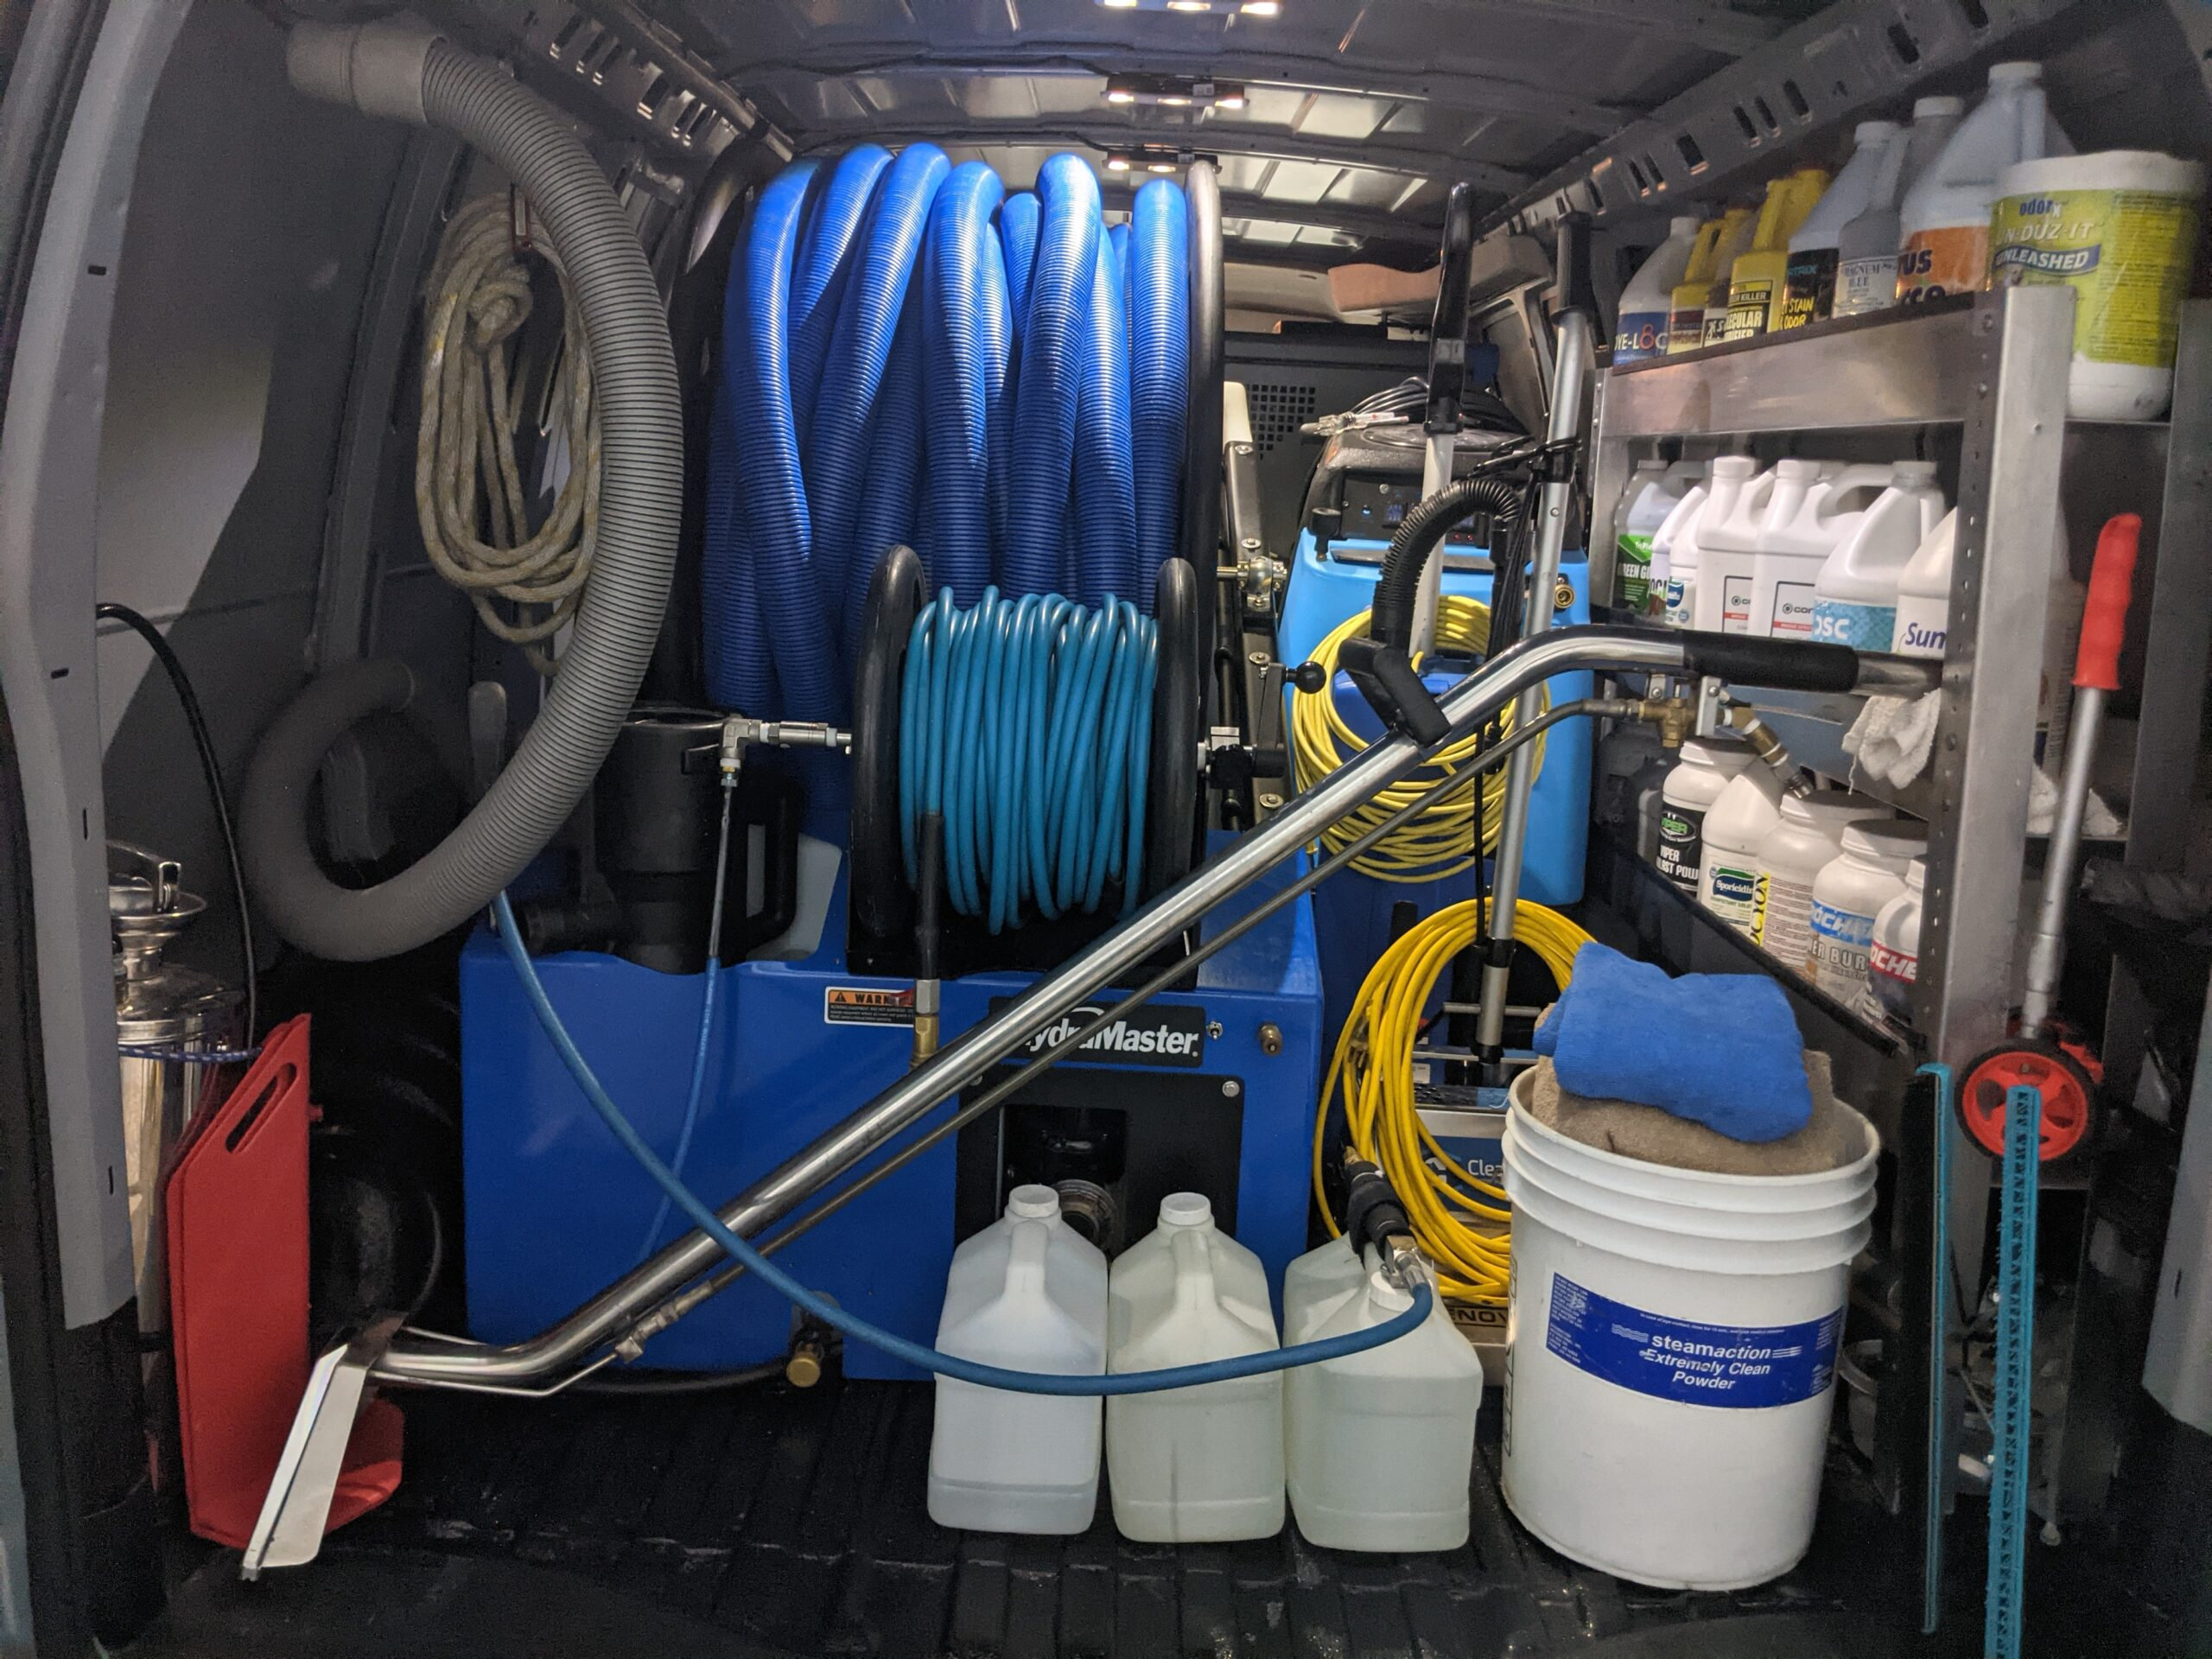 Carpet Cleaning Services Balsam Lake WI Equipment